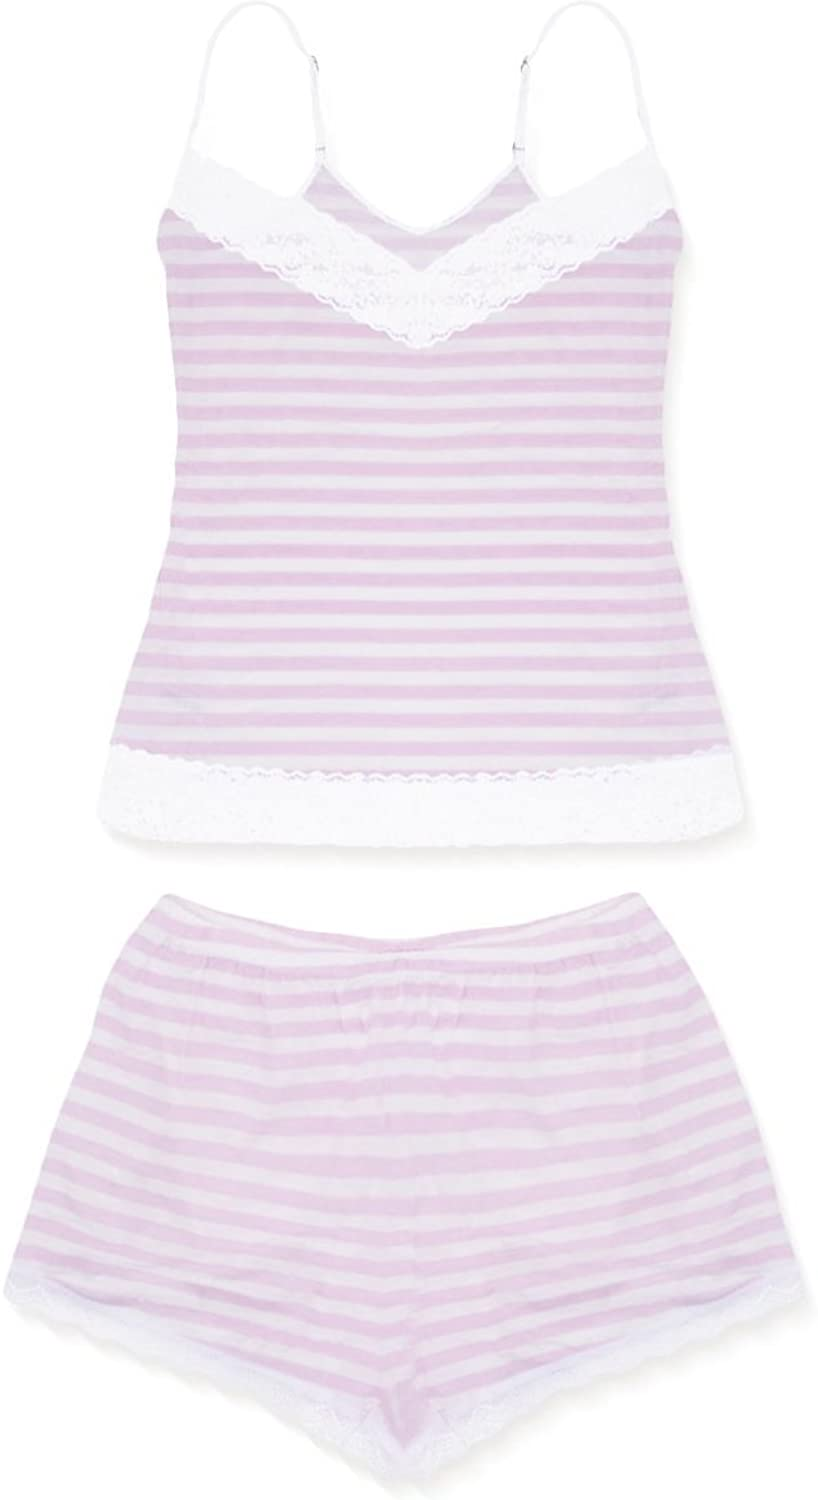 Cheekfrills Women's Candy Stripe Camisole and Bed Shorts